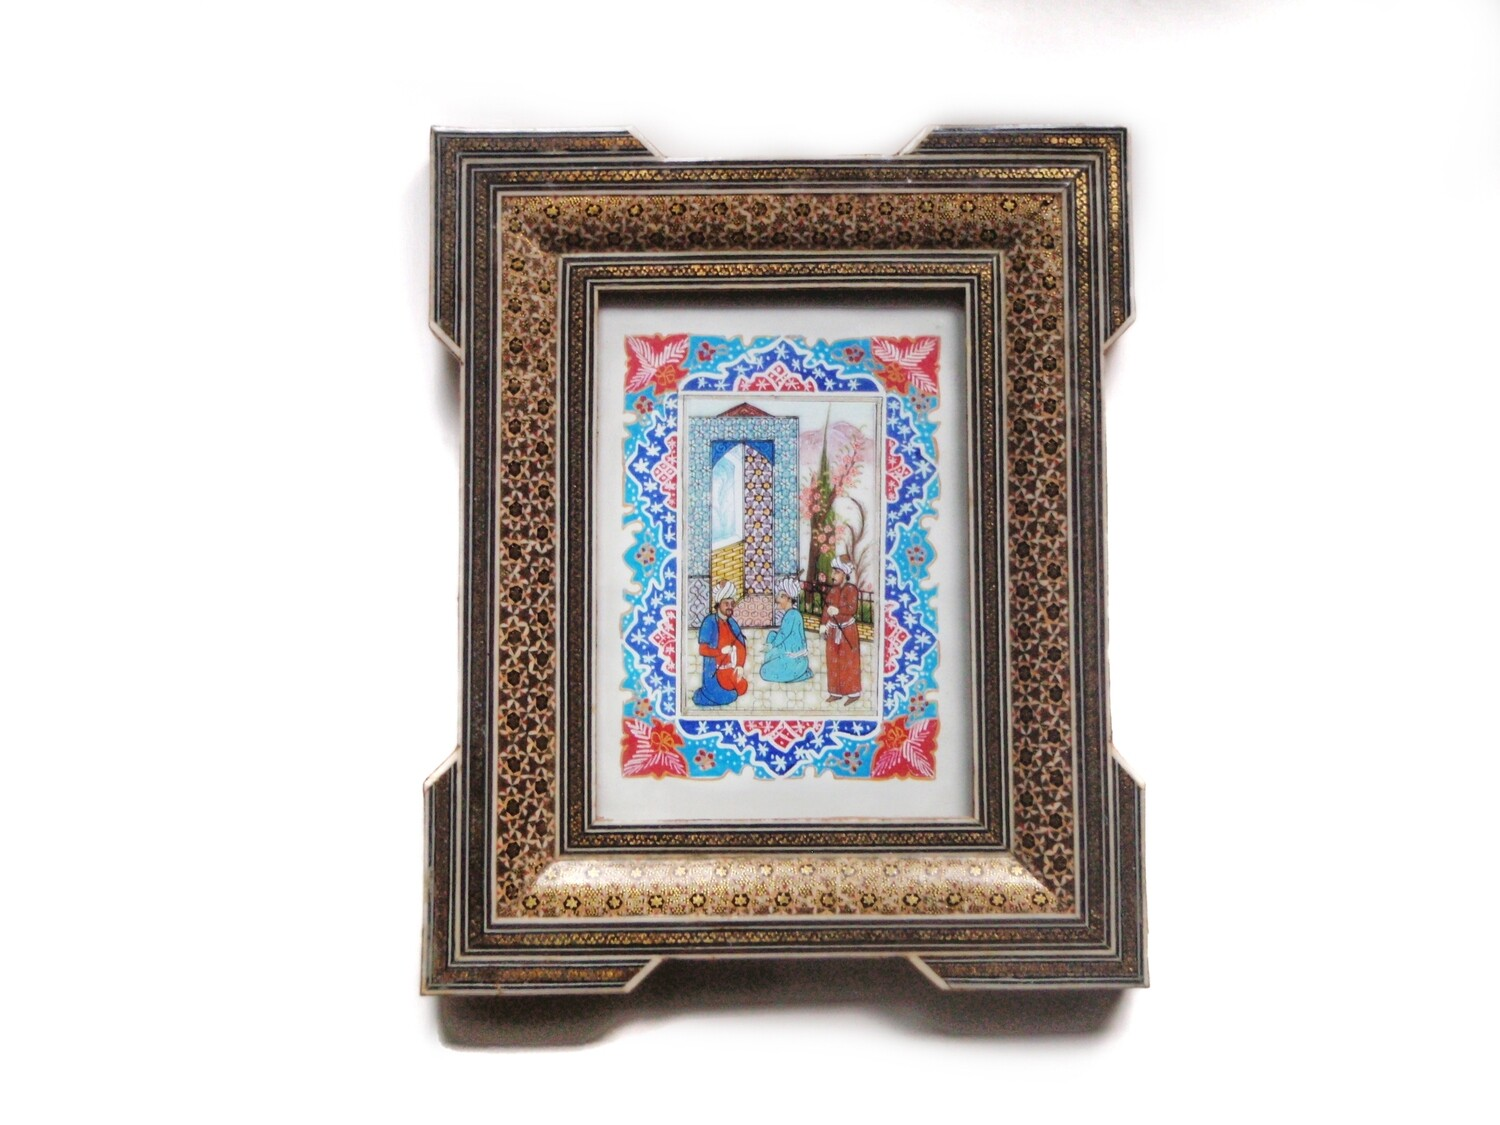 Persian Middle Eastern Scholars Art in Elaborate Khatam Frame